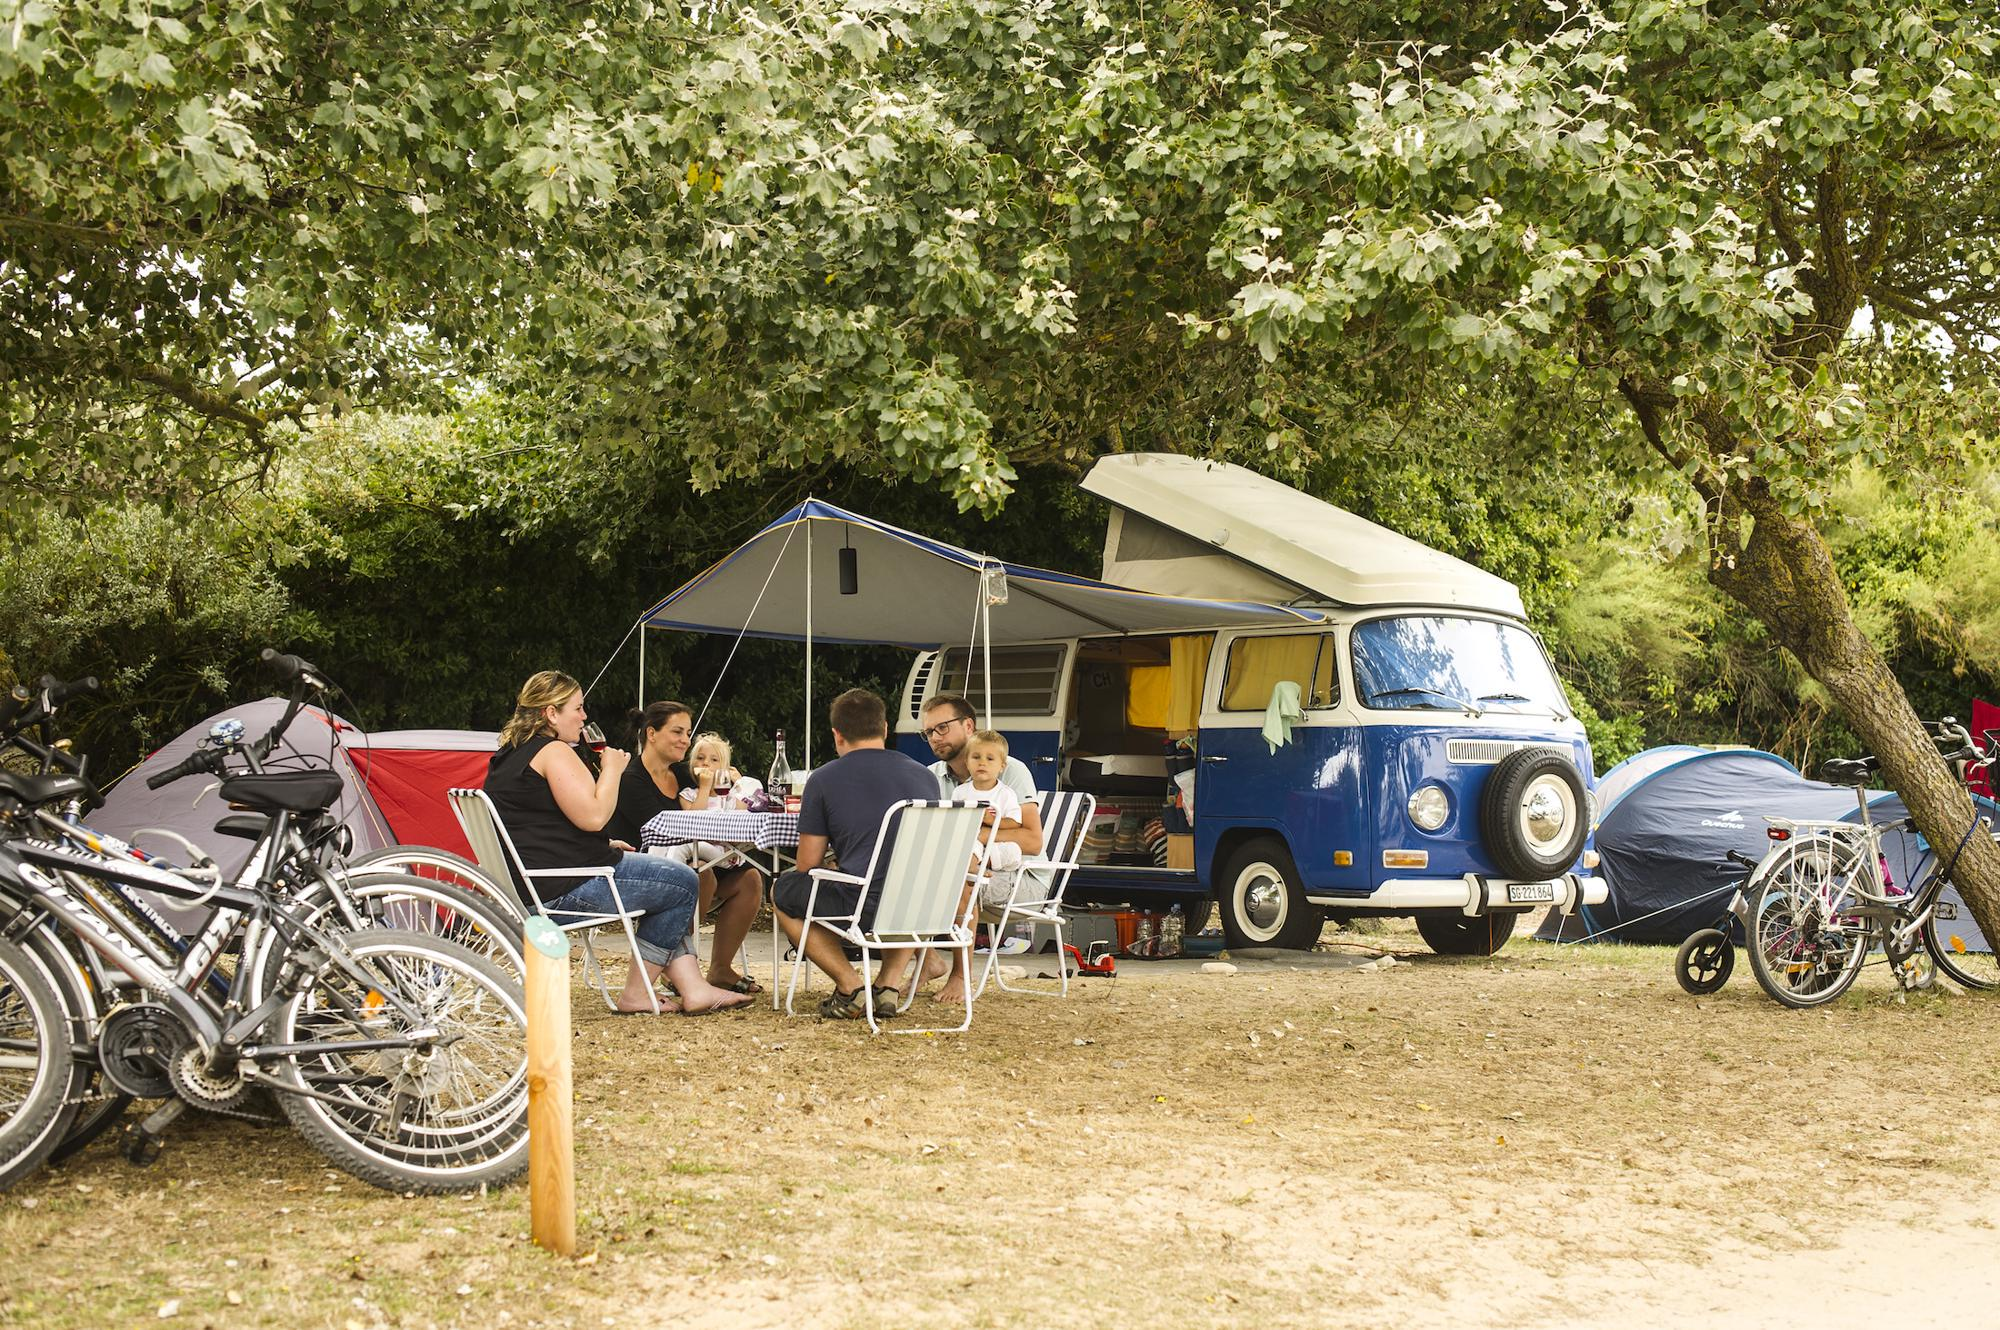 Campervan Hire in Europe | Motorhome Rental in France, Spain, Italy, Portugal and more.